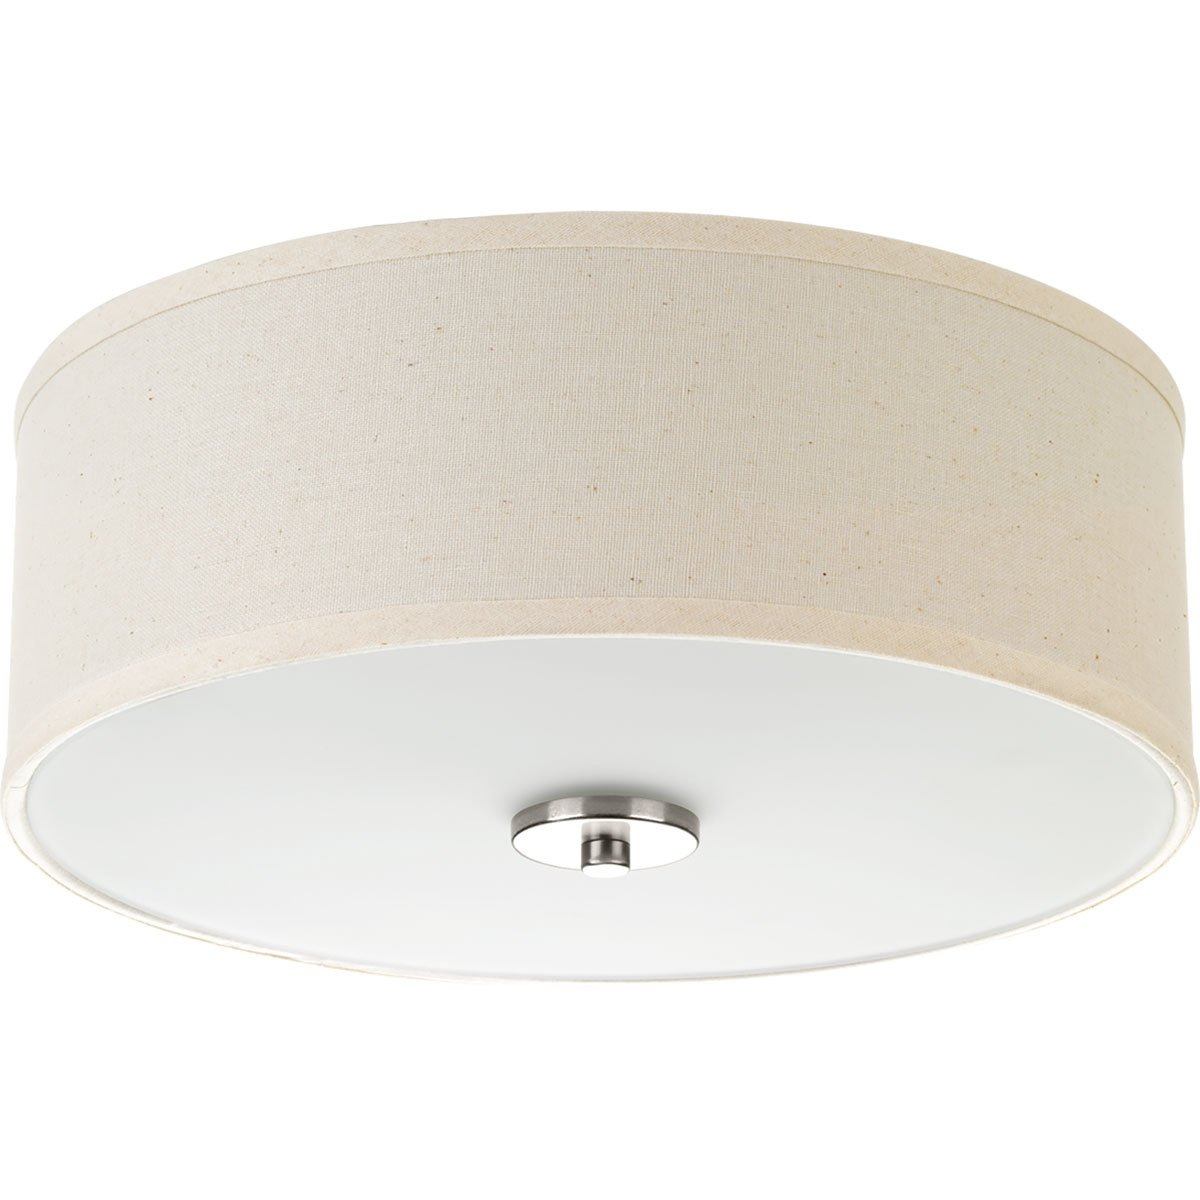 6f23ceb3e36 Amazon.com  Progress Lighting P3713-09 Inspire Two-Light Flush Mount ...